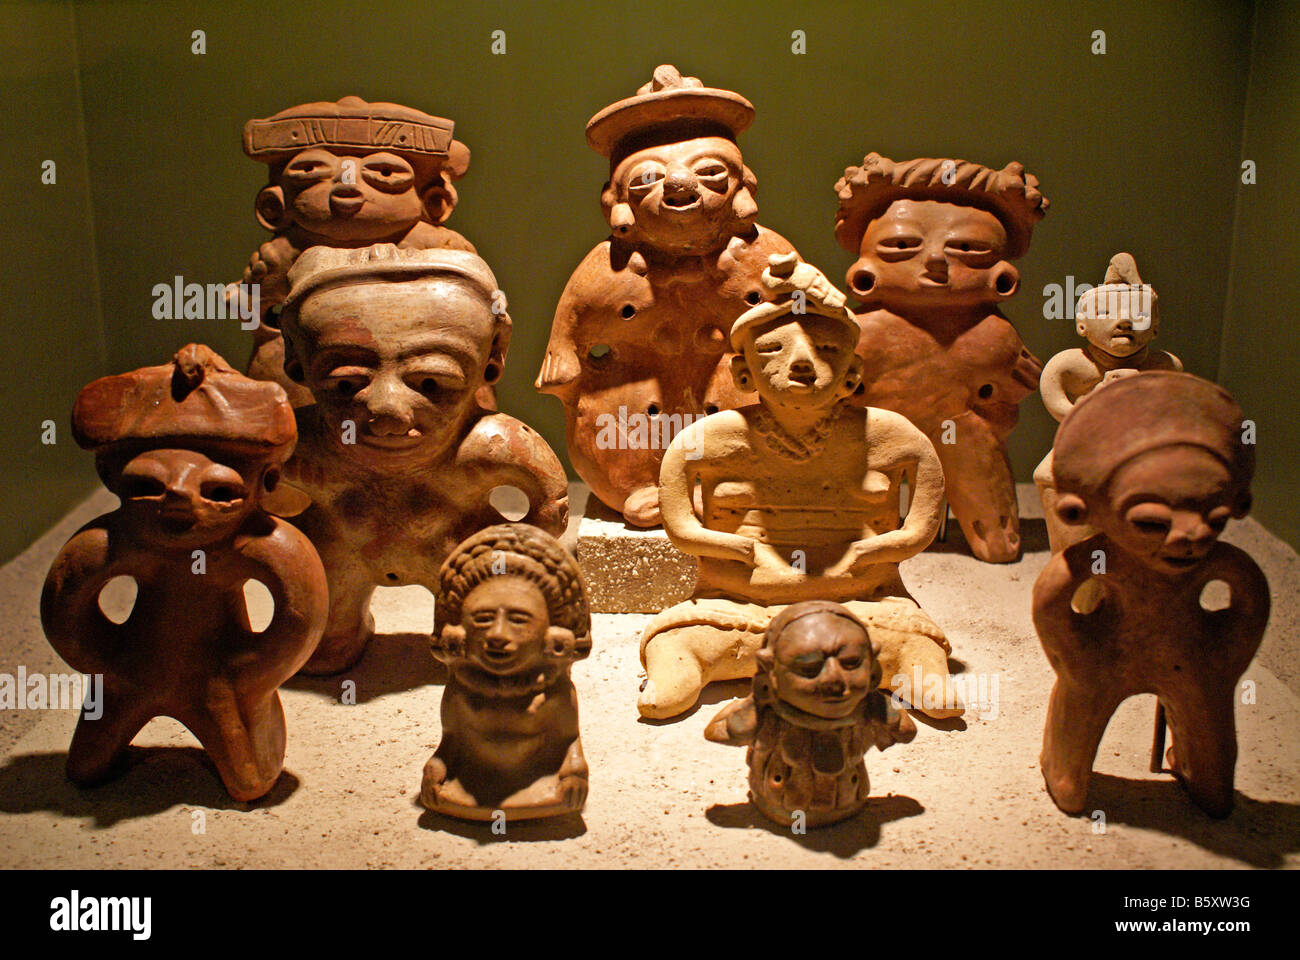 Pre-Columbian ceramic clay figurines in the Museo Nacional de Antropologia national anthropology museum  David J - Stock Image